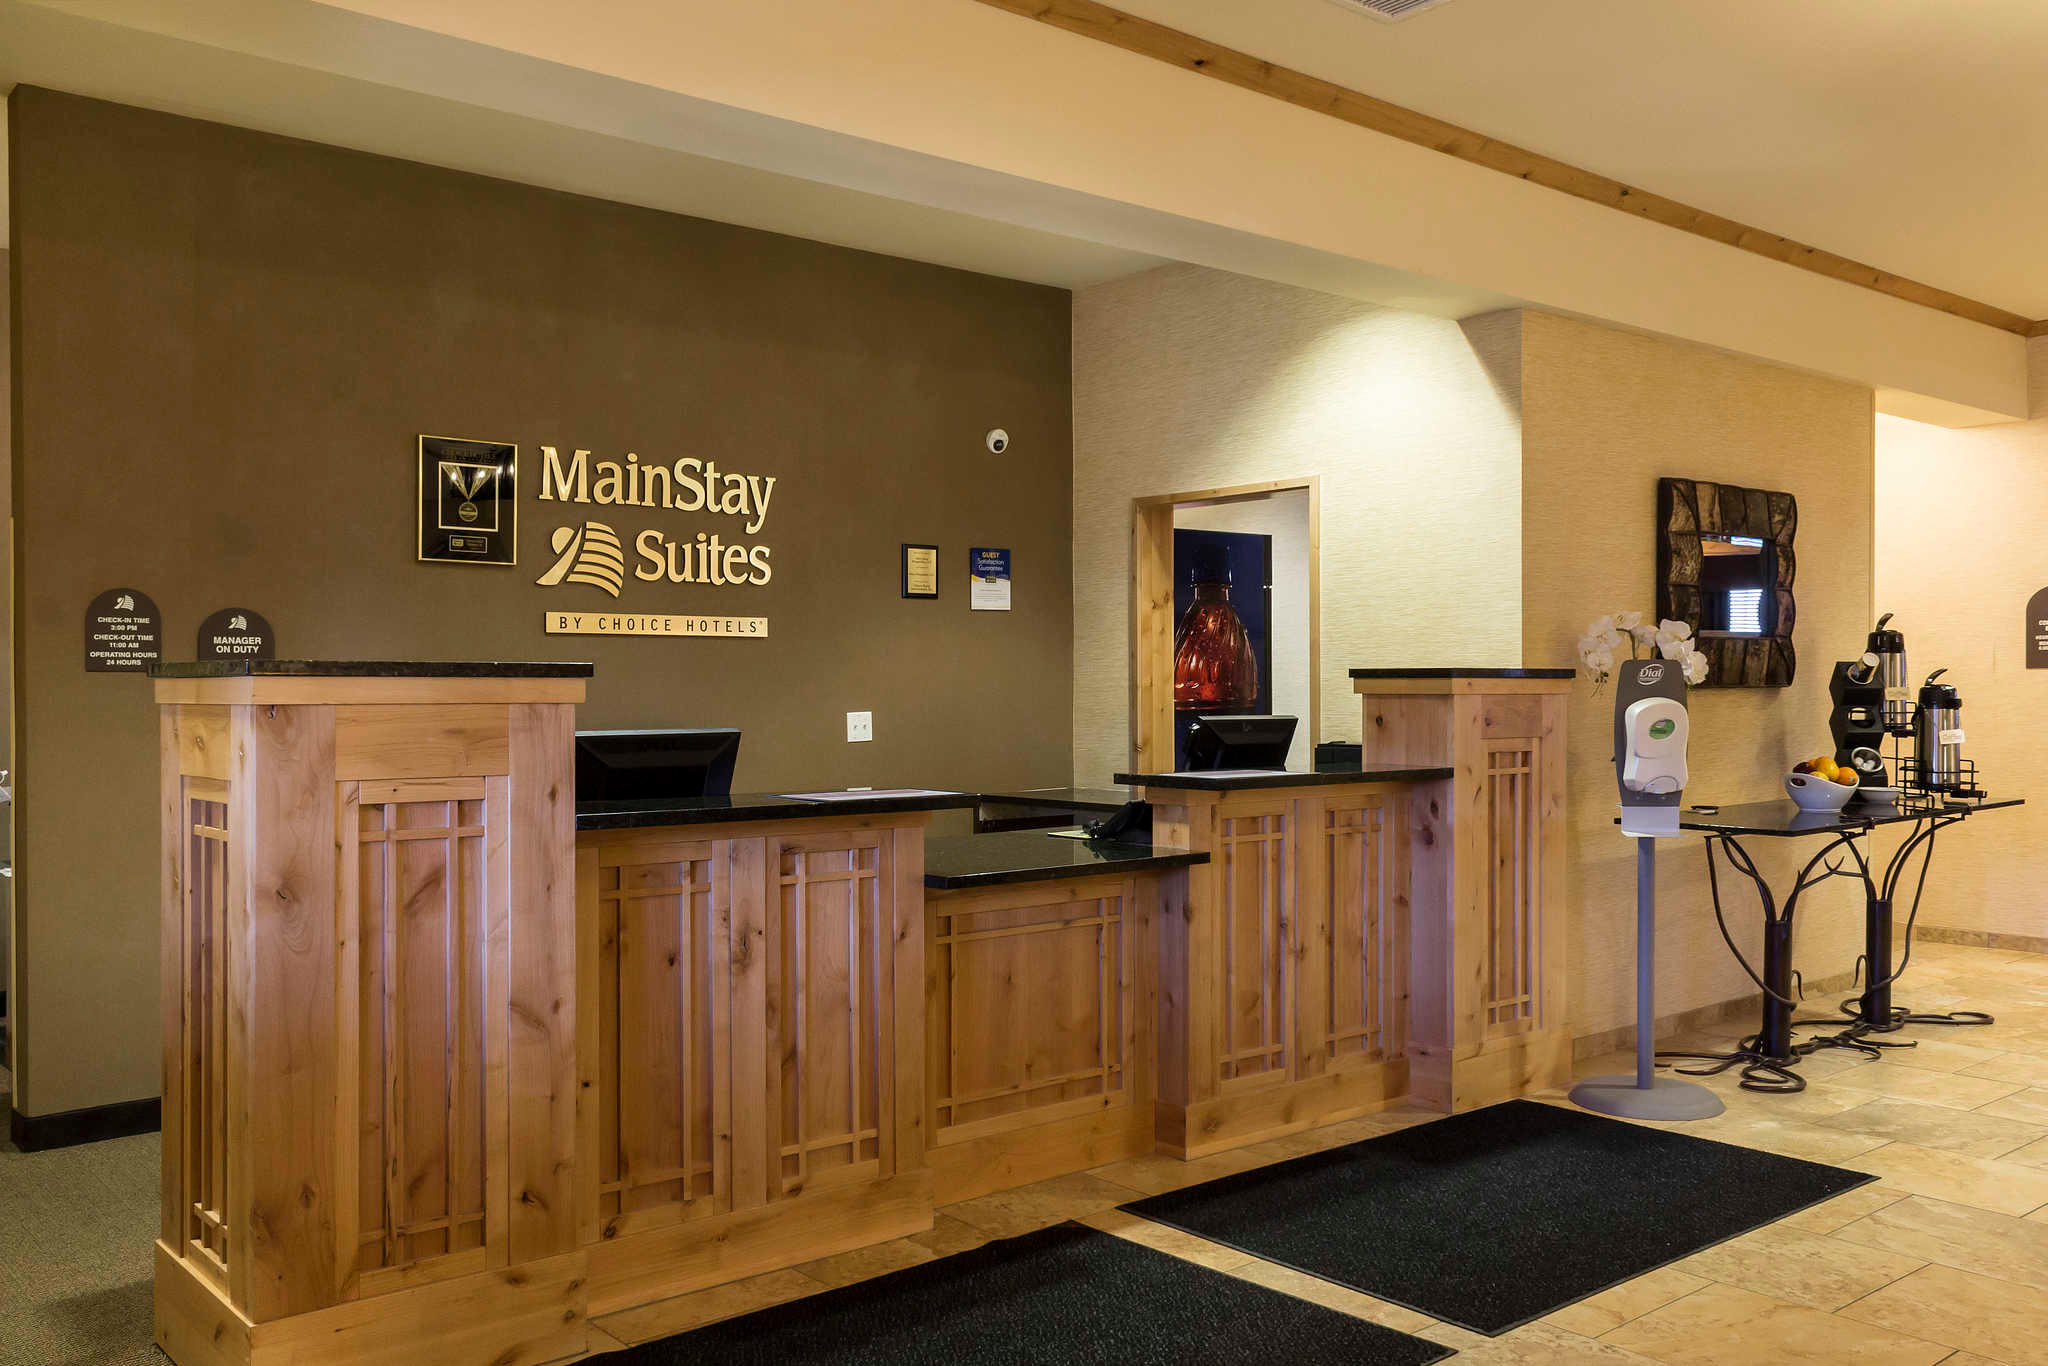 MainStay Suites image 6